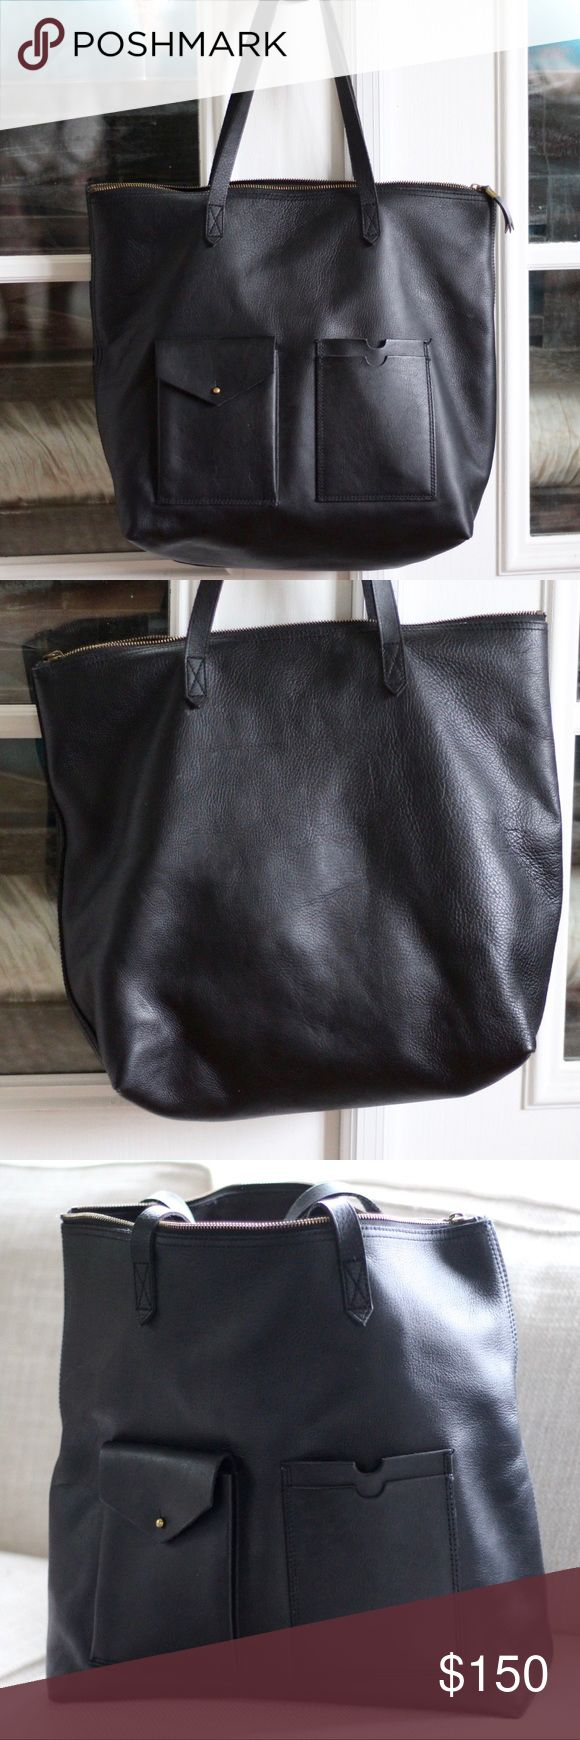 Madewell Zip Transport Tote with Pocket Barely carried. Leather. Height: 14.25. Length:17. Depth: 6.25. Handle drop 8.25. Madewell carryall in soft pebbled leather. Madewell Bags Totes